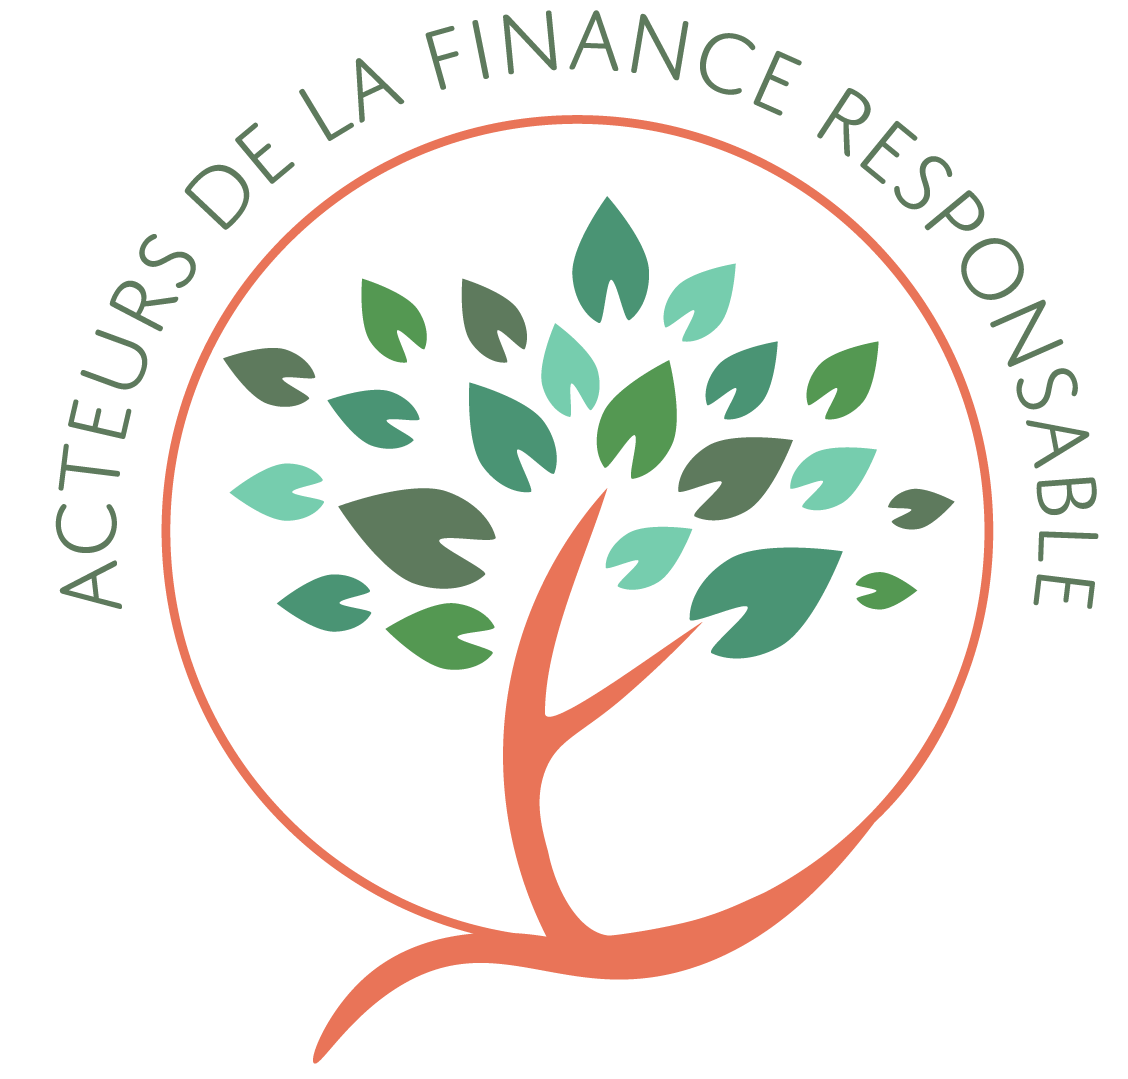 Association - Les acteurs de la finance responsable